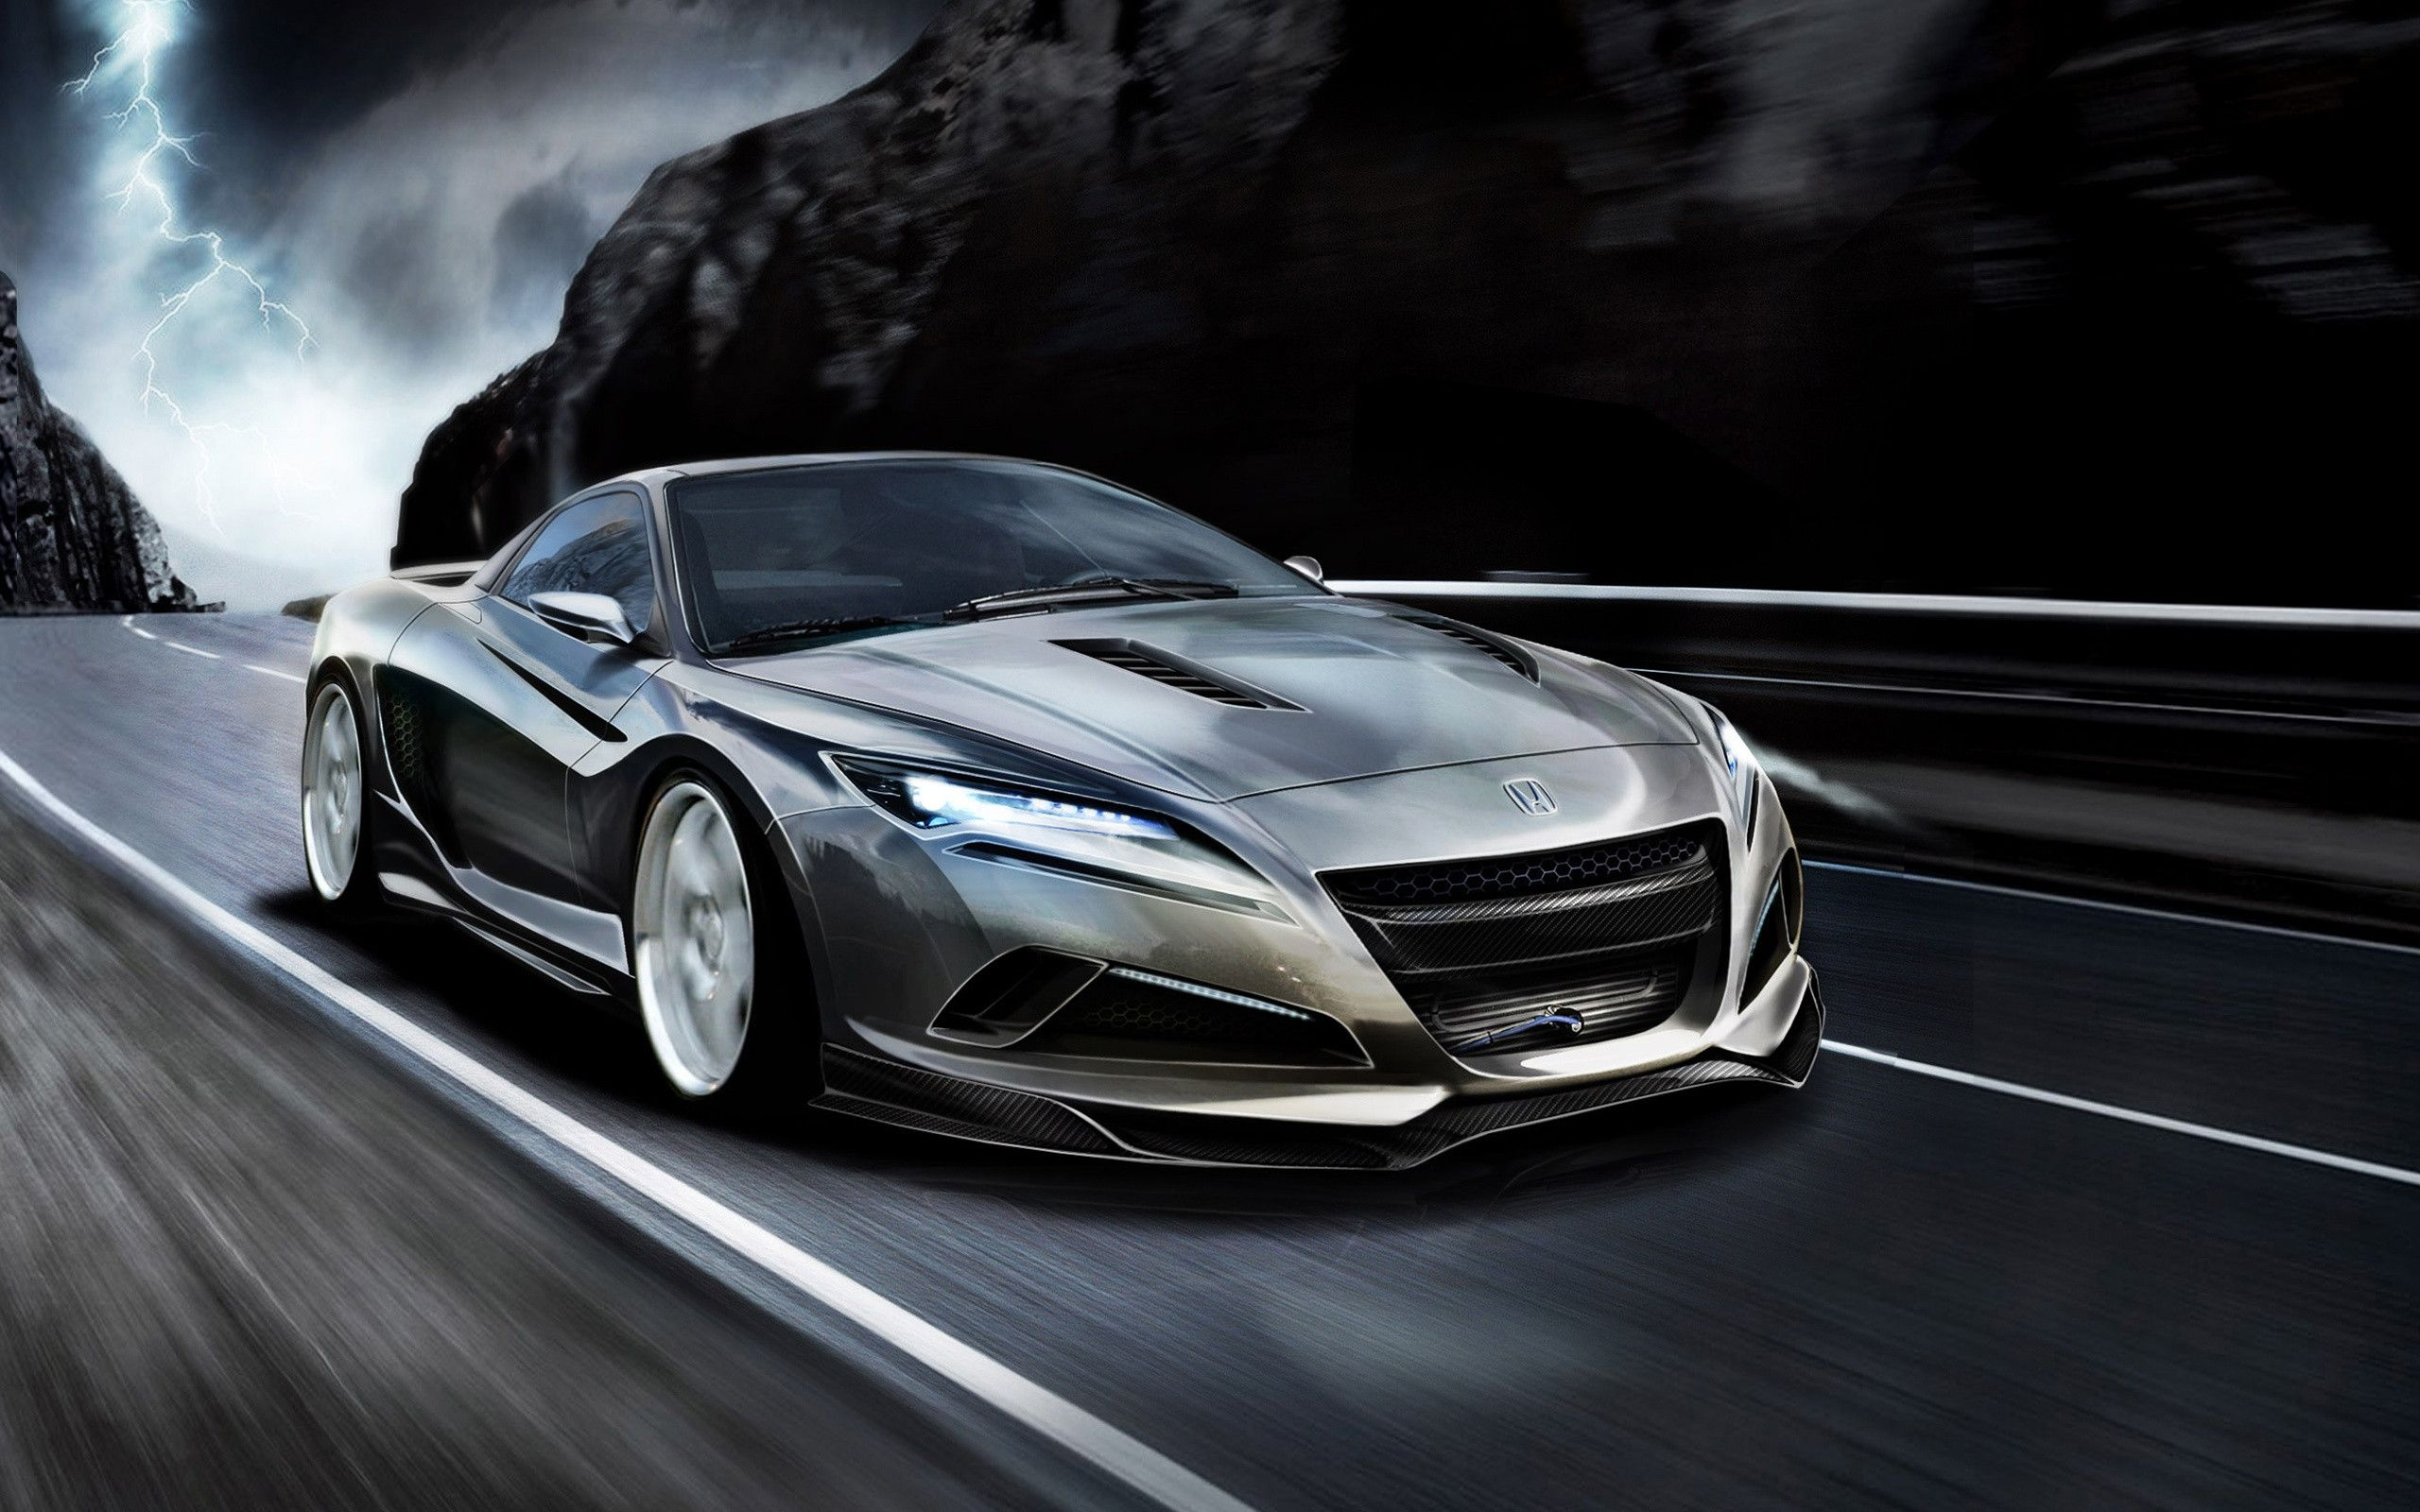 Super Cars Wallpapers